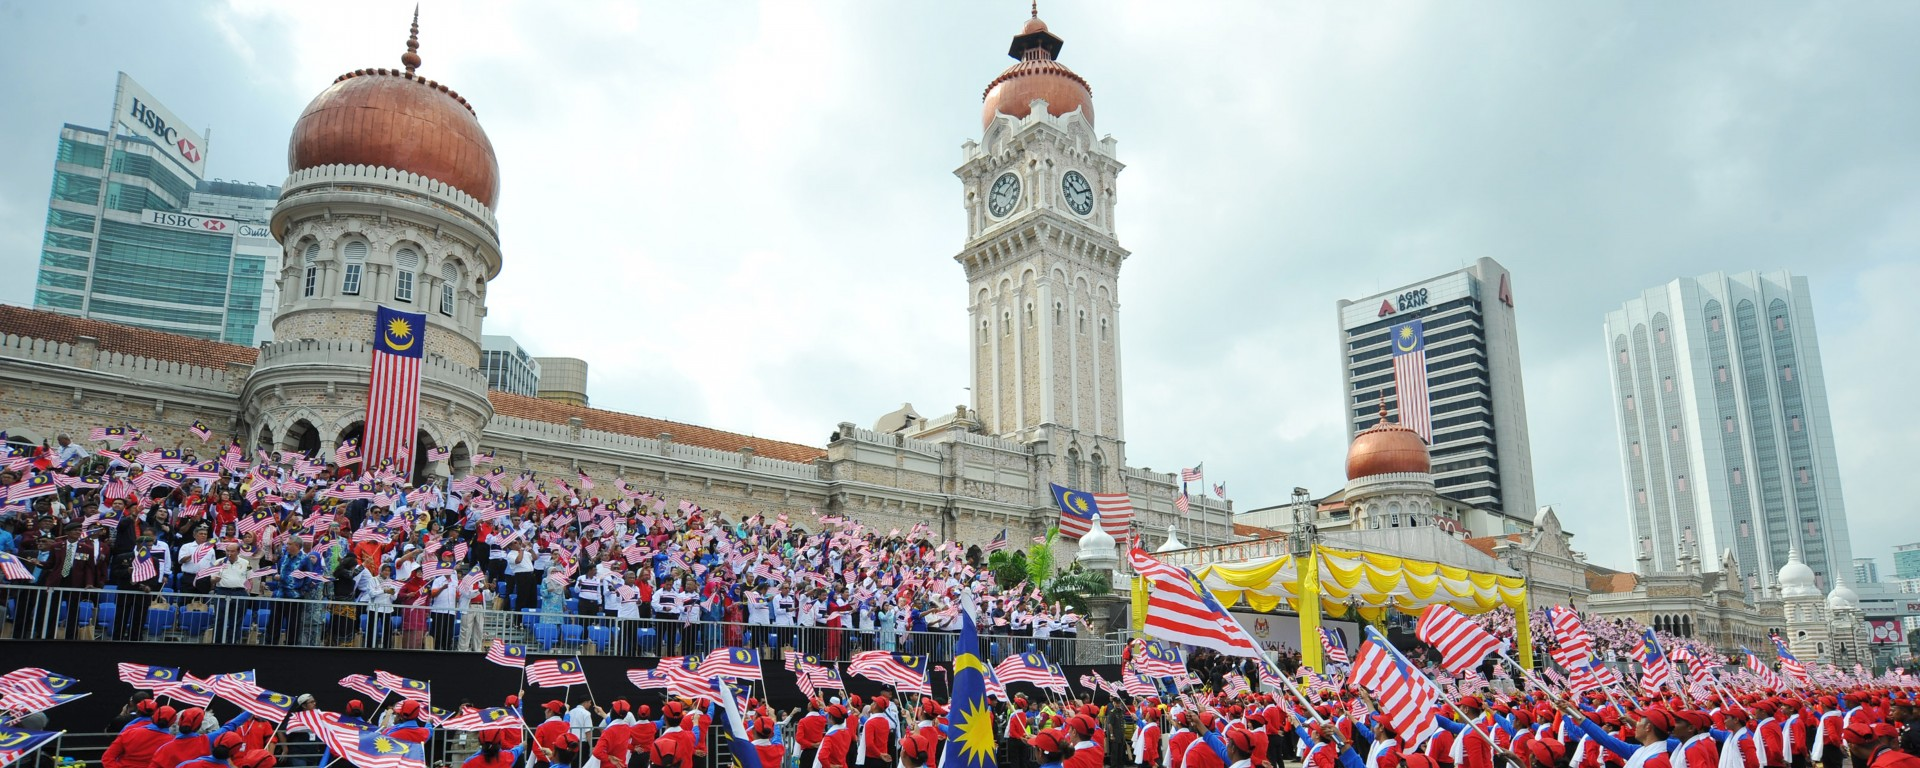 A grand parade to mark Malaysia&#039;s 60th National Day celebration <div class='action'><a href='' class='btn btn-danger btn-lg' target=''>Find Out More</a></div>